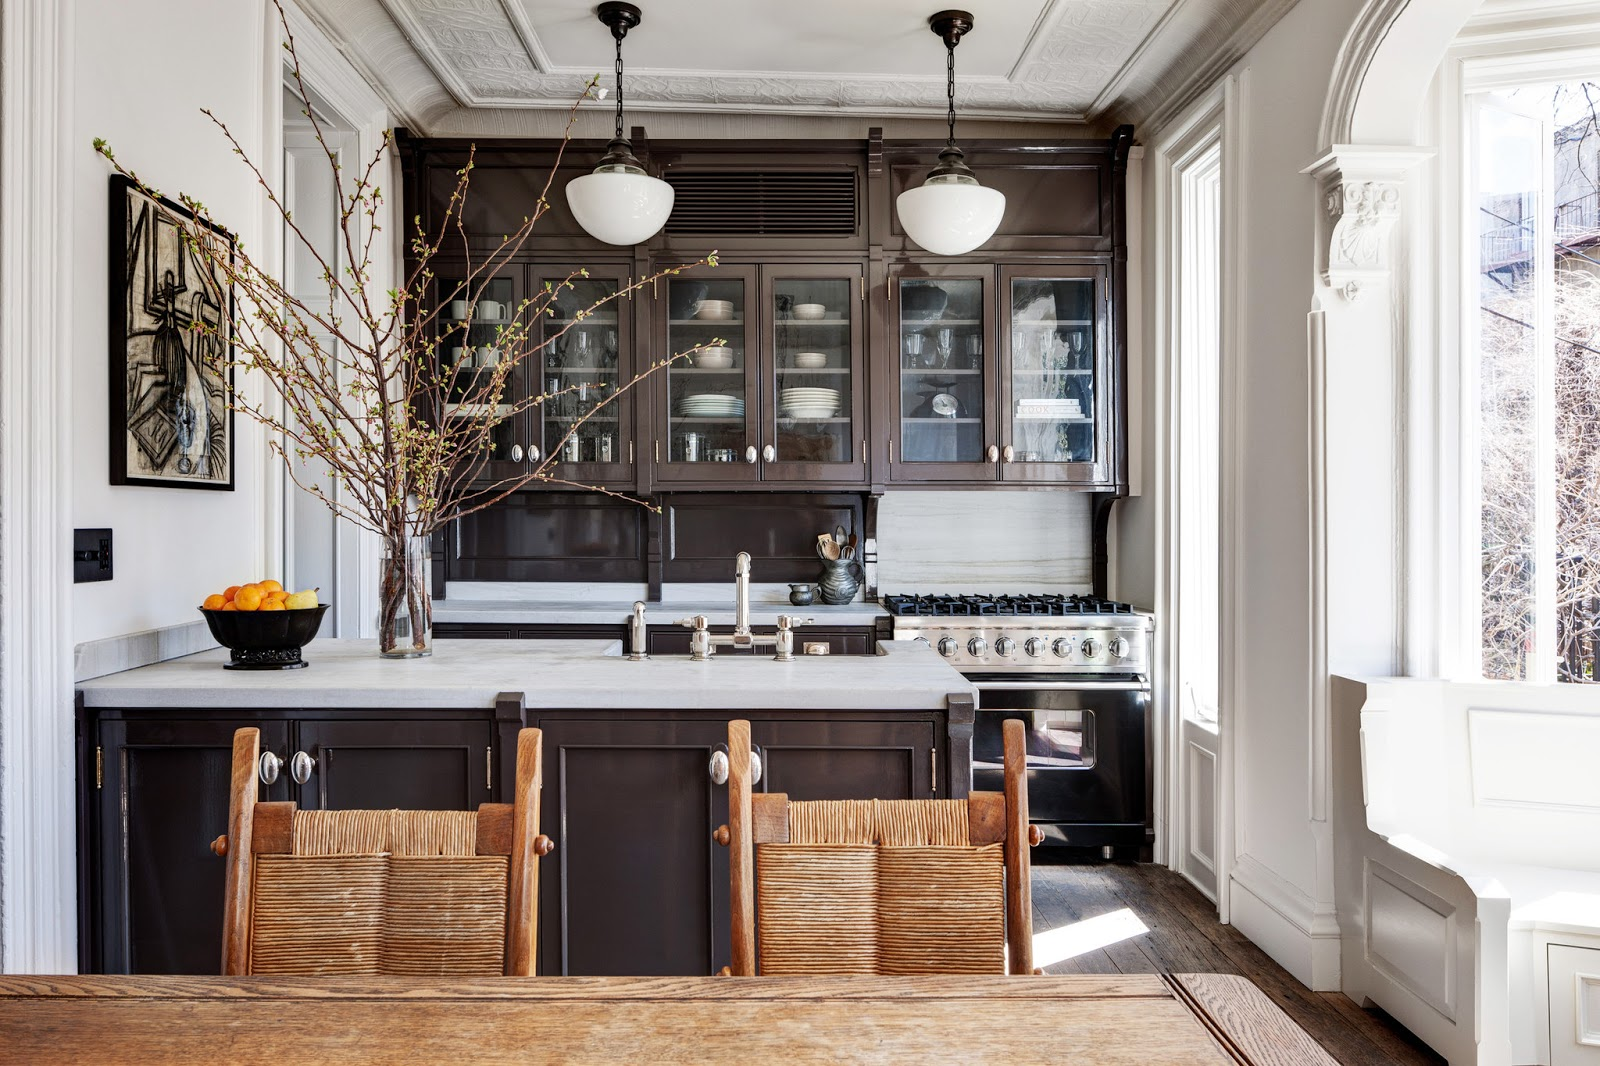 Decor a brooklyn brownstone renovation by roman and williams cool chic style fashion Brooklyn brownstone interior